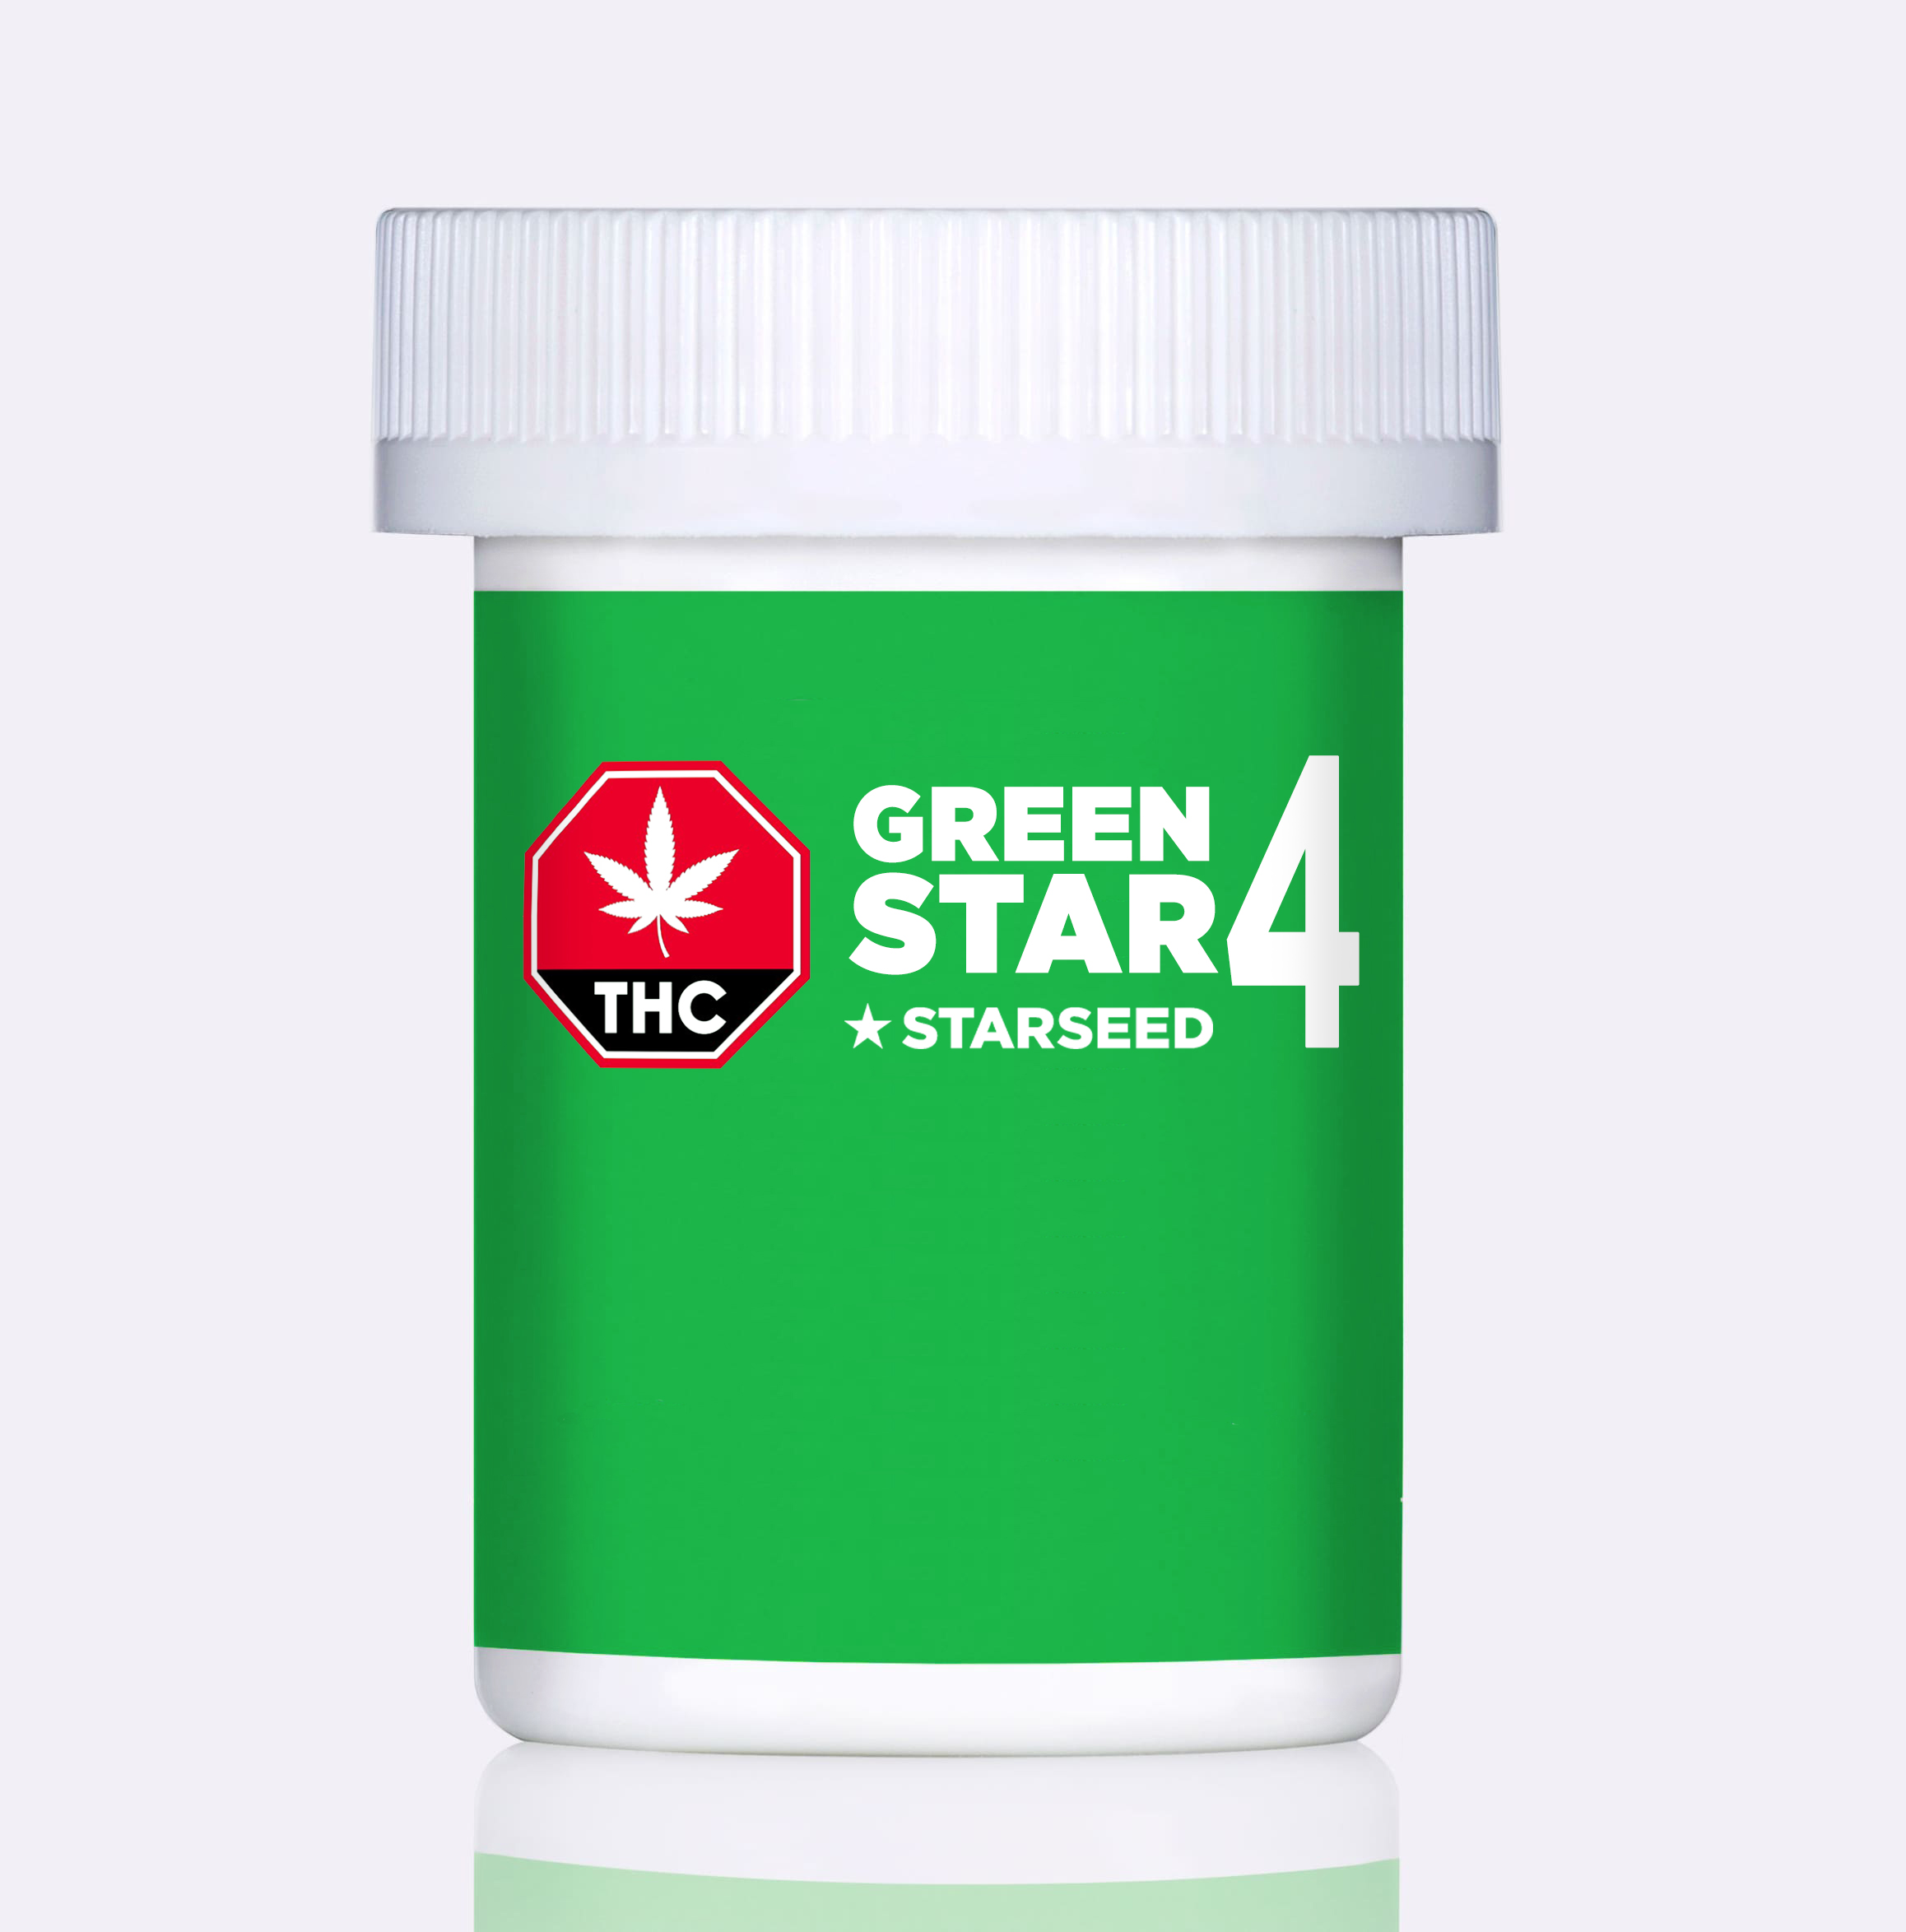 Starseed Green Star 4 - 5g